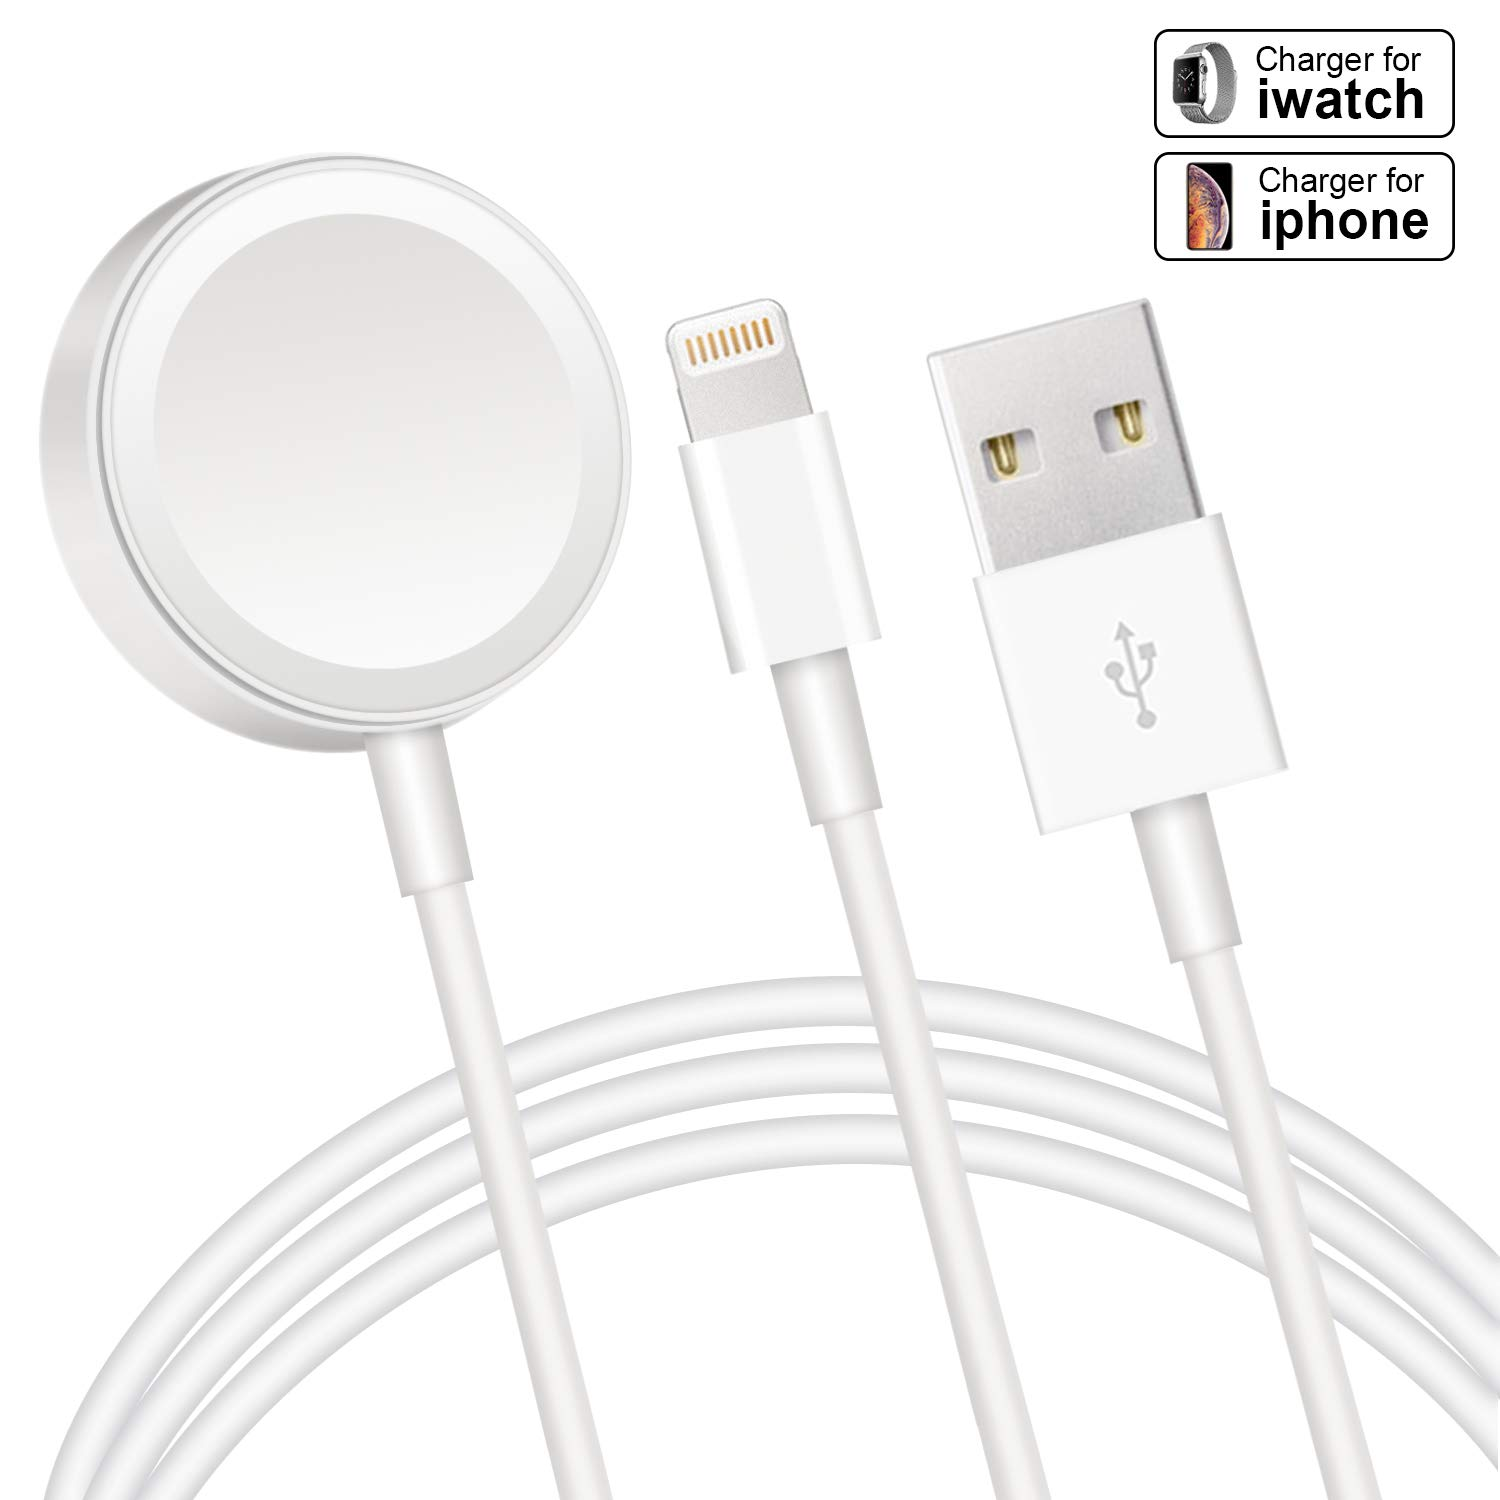 Compatible with Apple Watch iWatch Charger, Wireless Charger 2 in 1 Charging Cable Compatible with for Apple Watch Series 4/3/2/1 and iPhone XR/XS/XS Max/X/8/8Plus/7/7Plus/6/6Plus by WowTowel